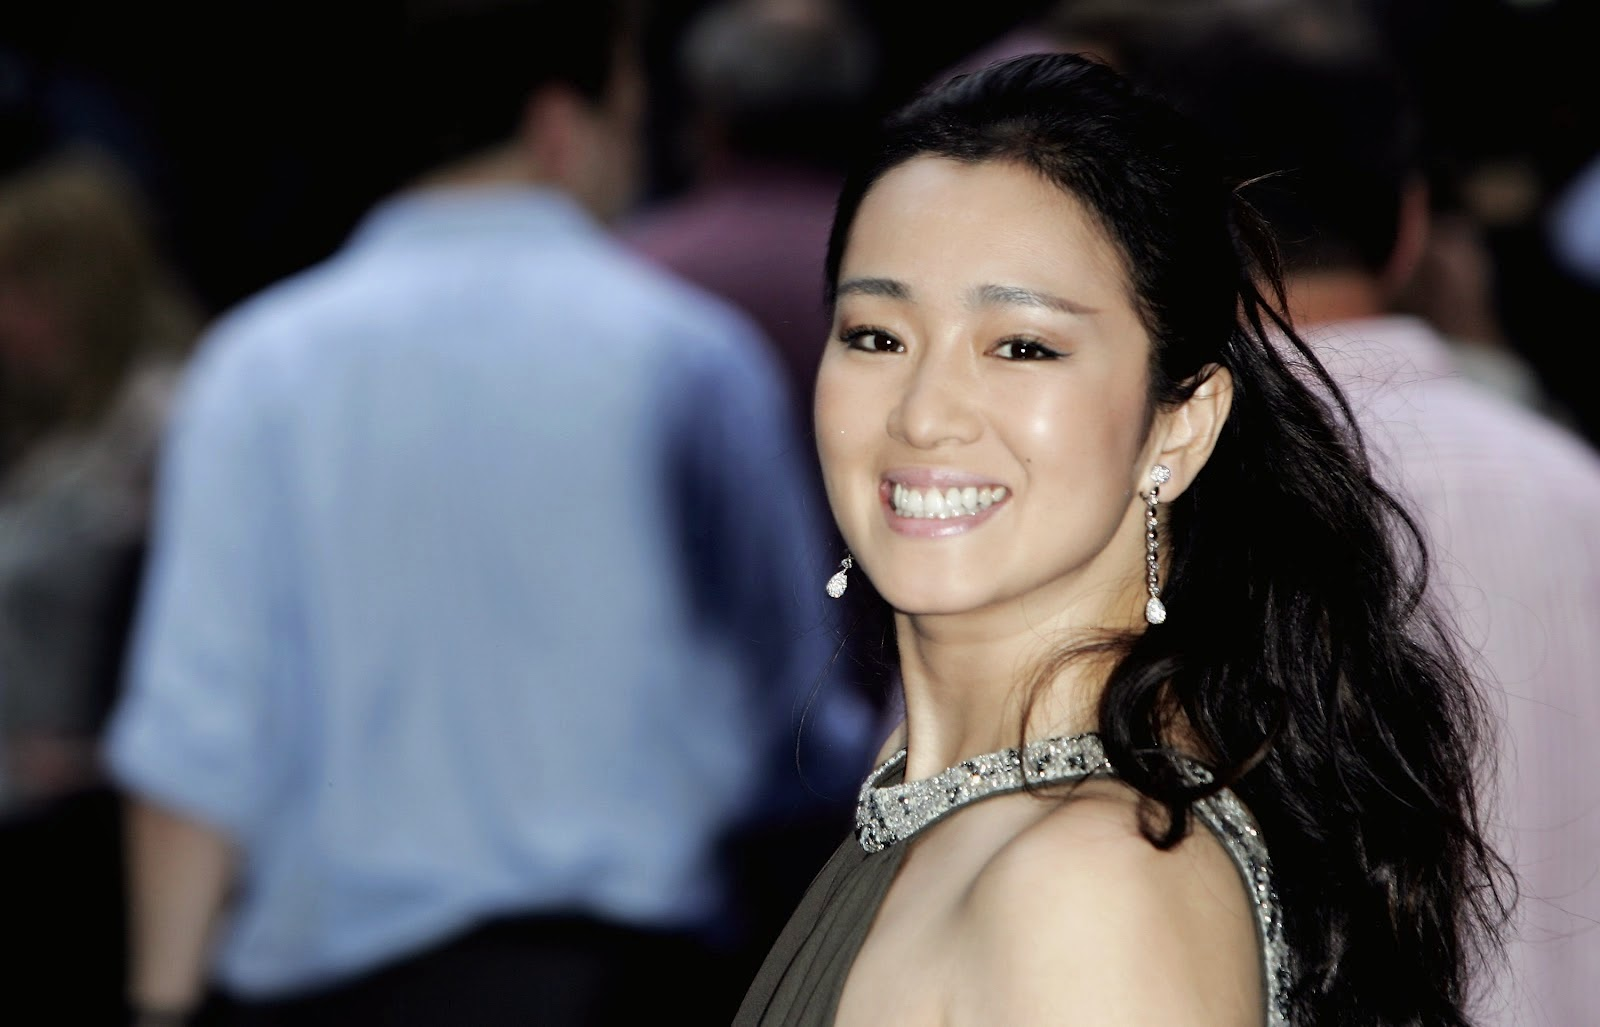 Actress Wallpapers Download Free: HD WALLPAPERS FREE DOWNLOAD: Japanese Actress HD